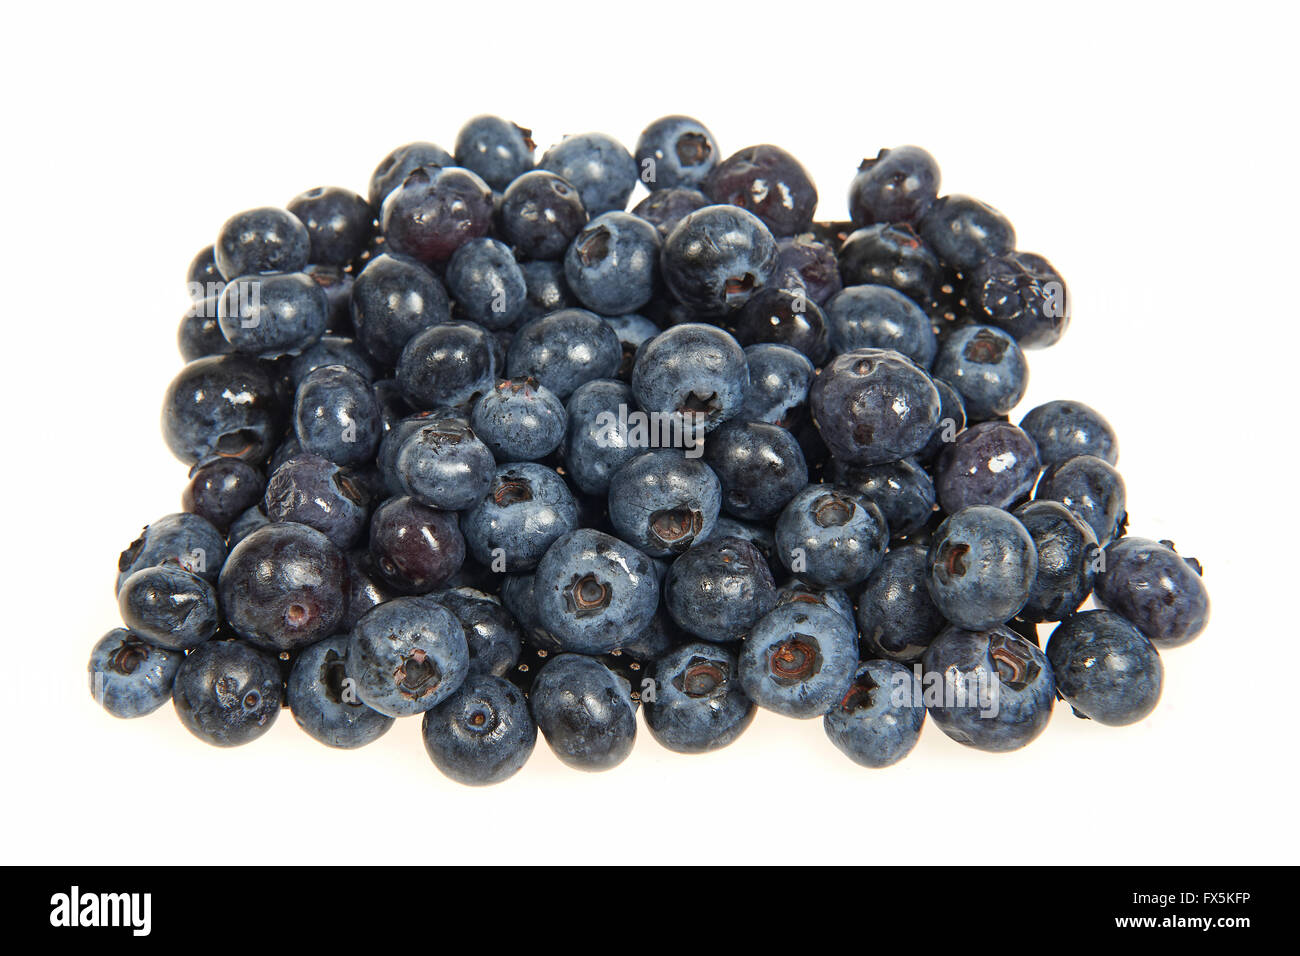 Fresh Bilberrys isolated on a white background - Stock Image